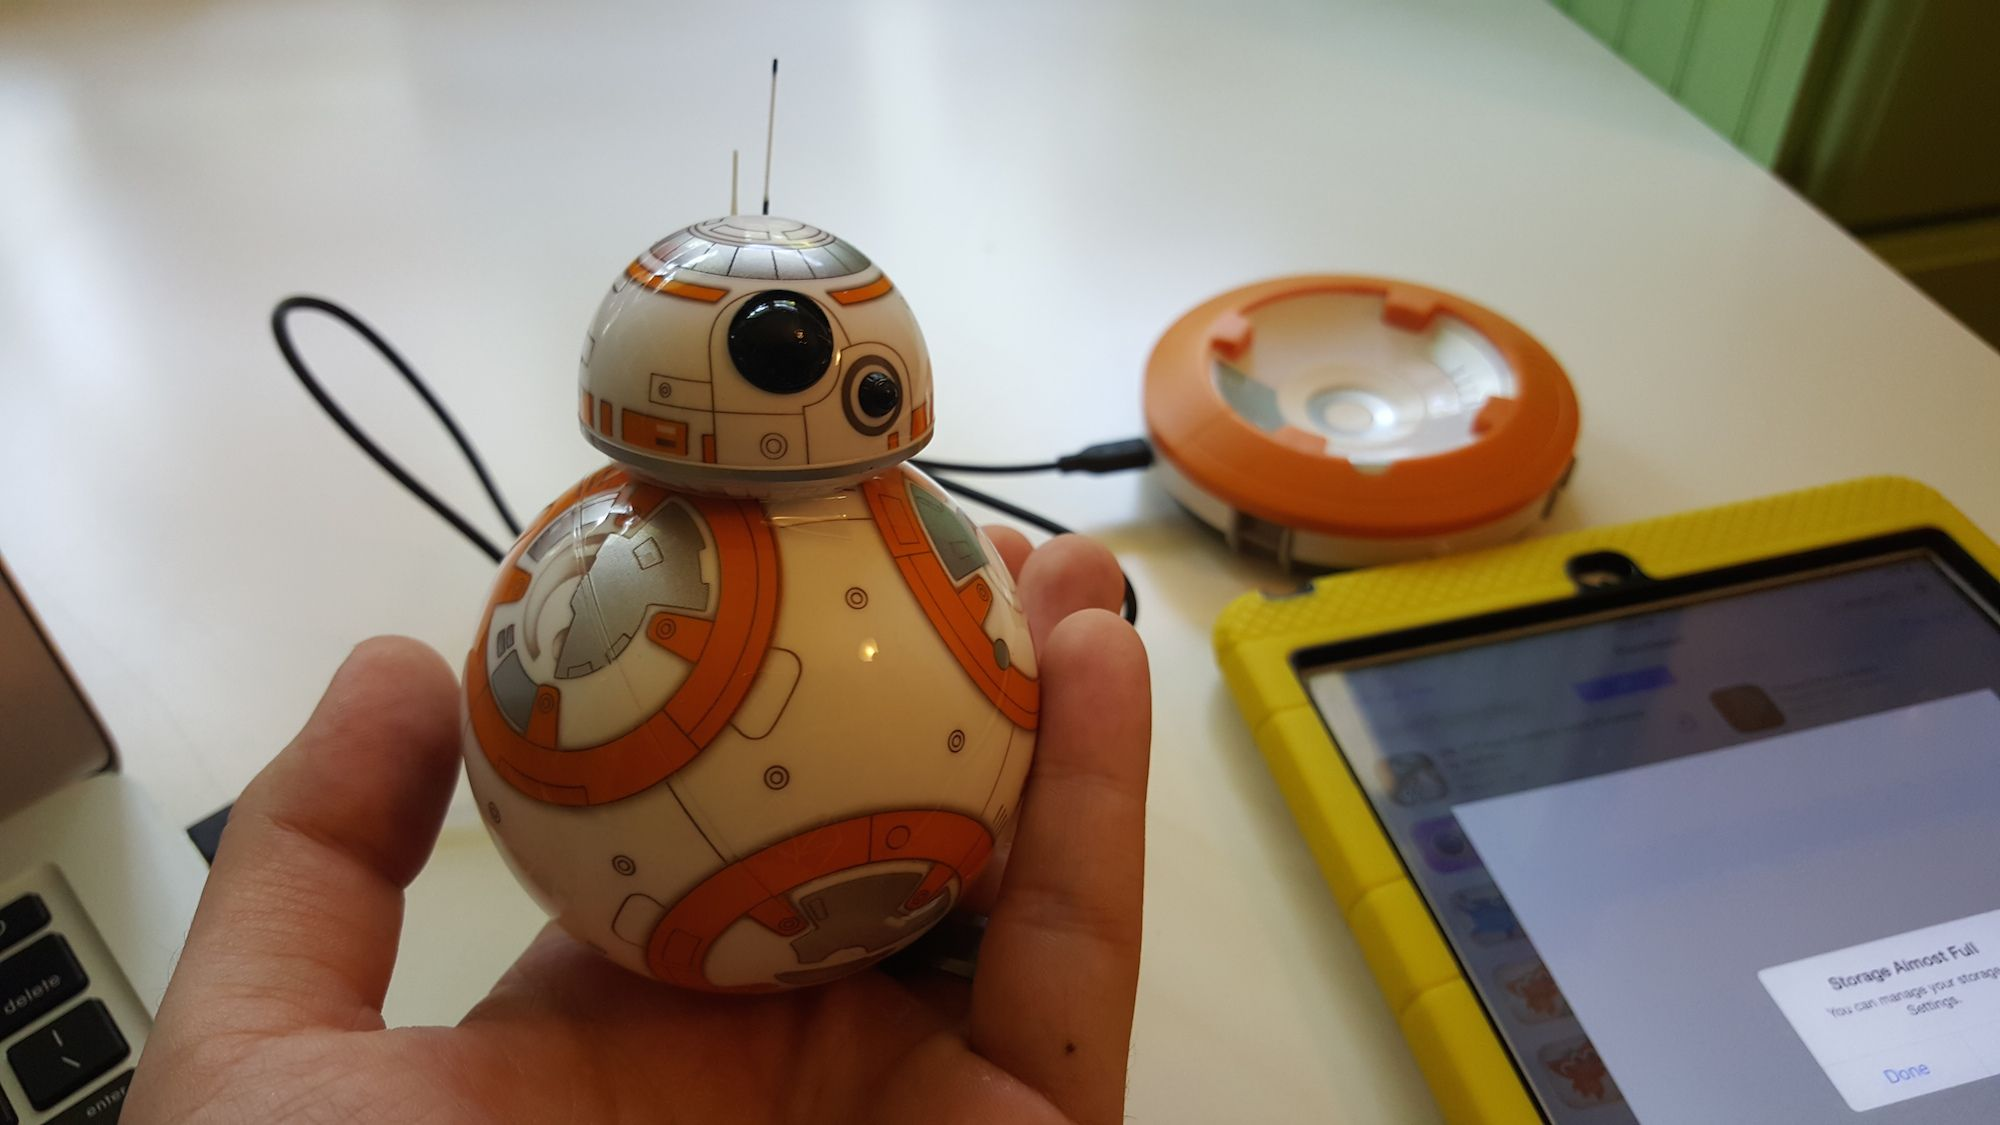 Star Wars' adorable, impossible droid is real: Our ...